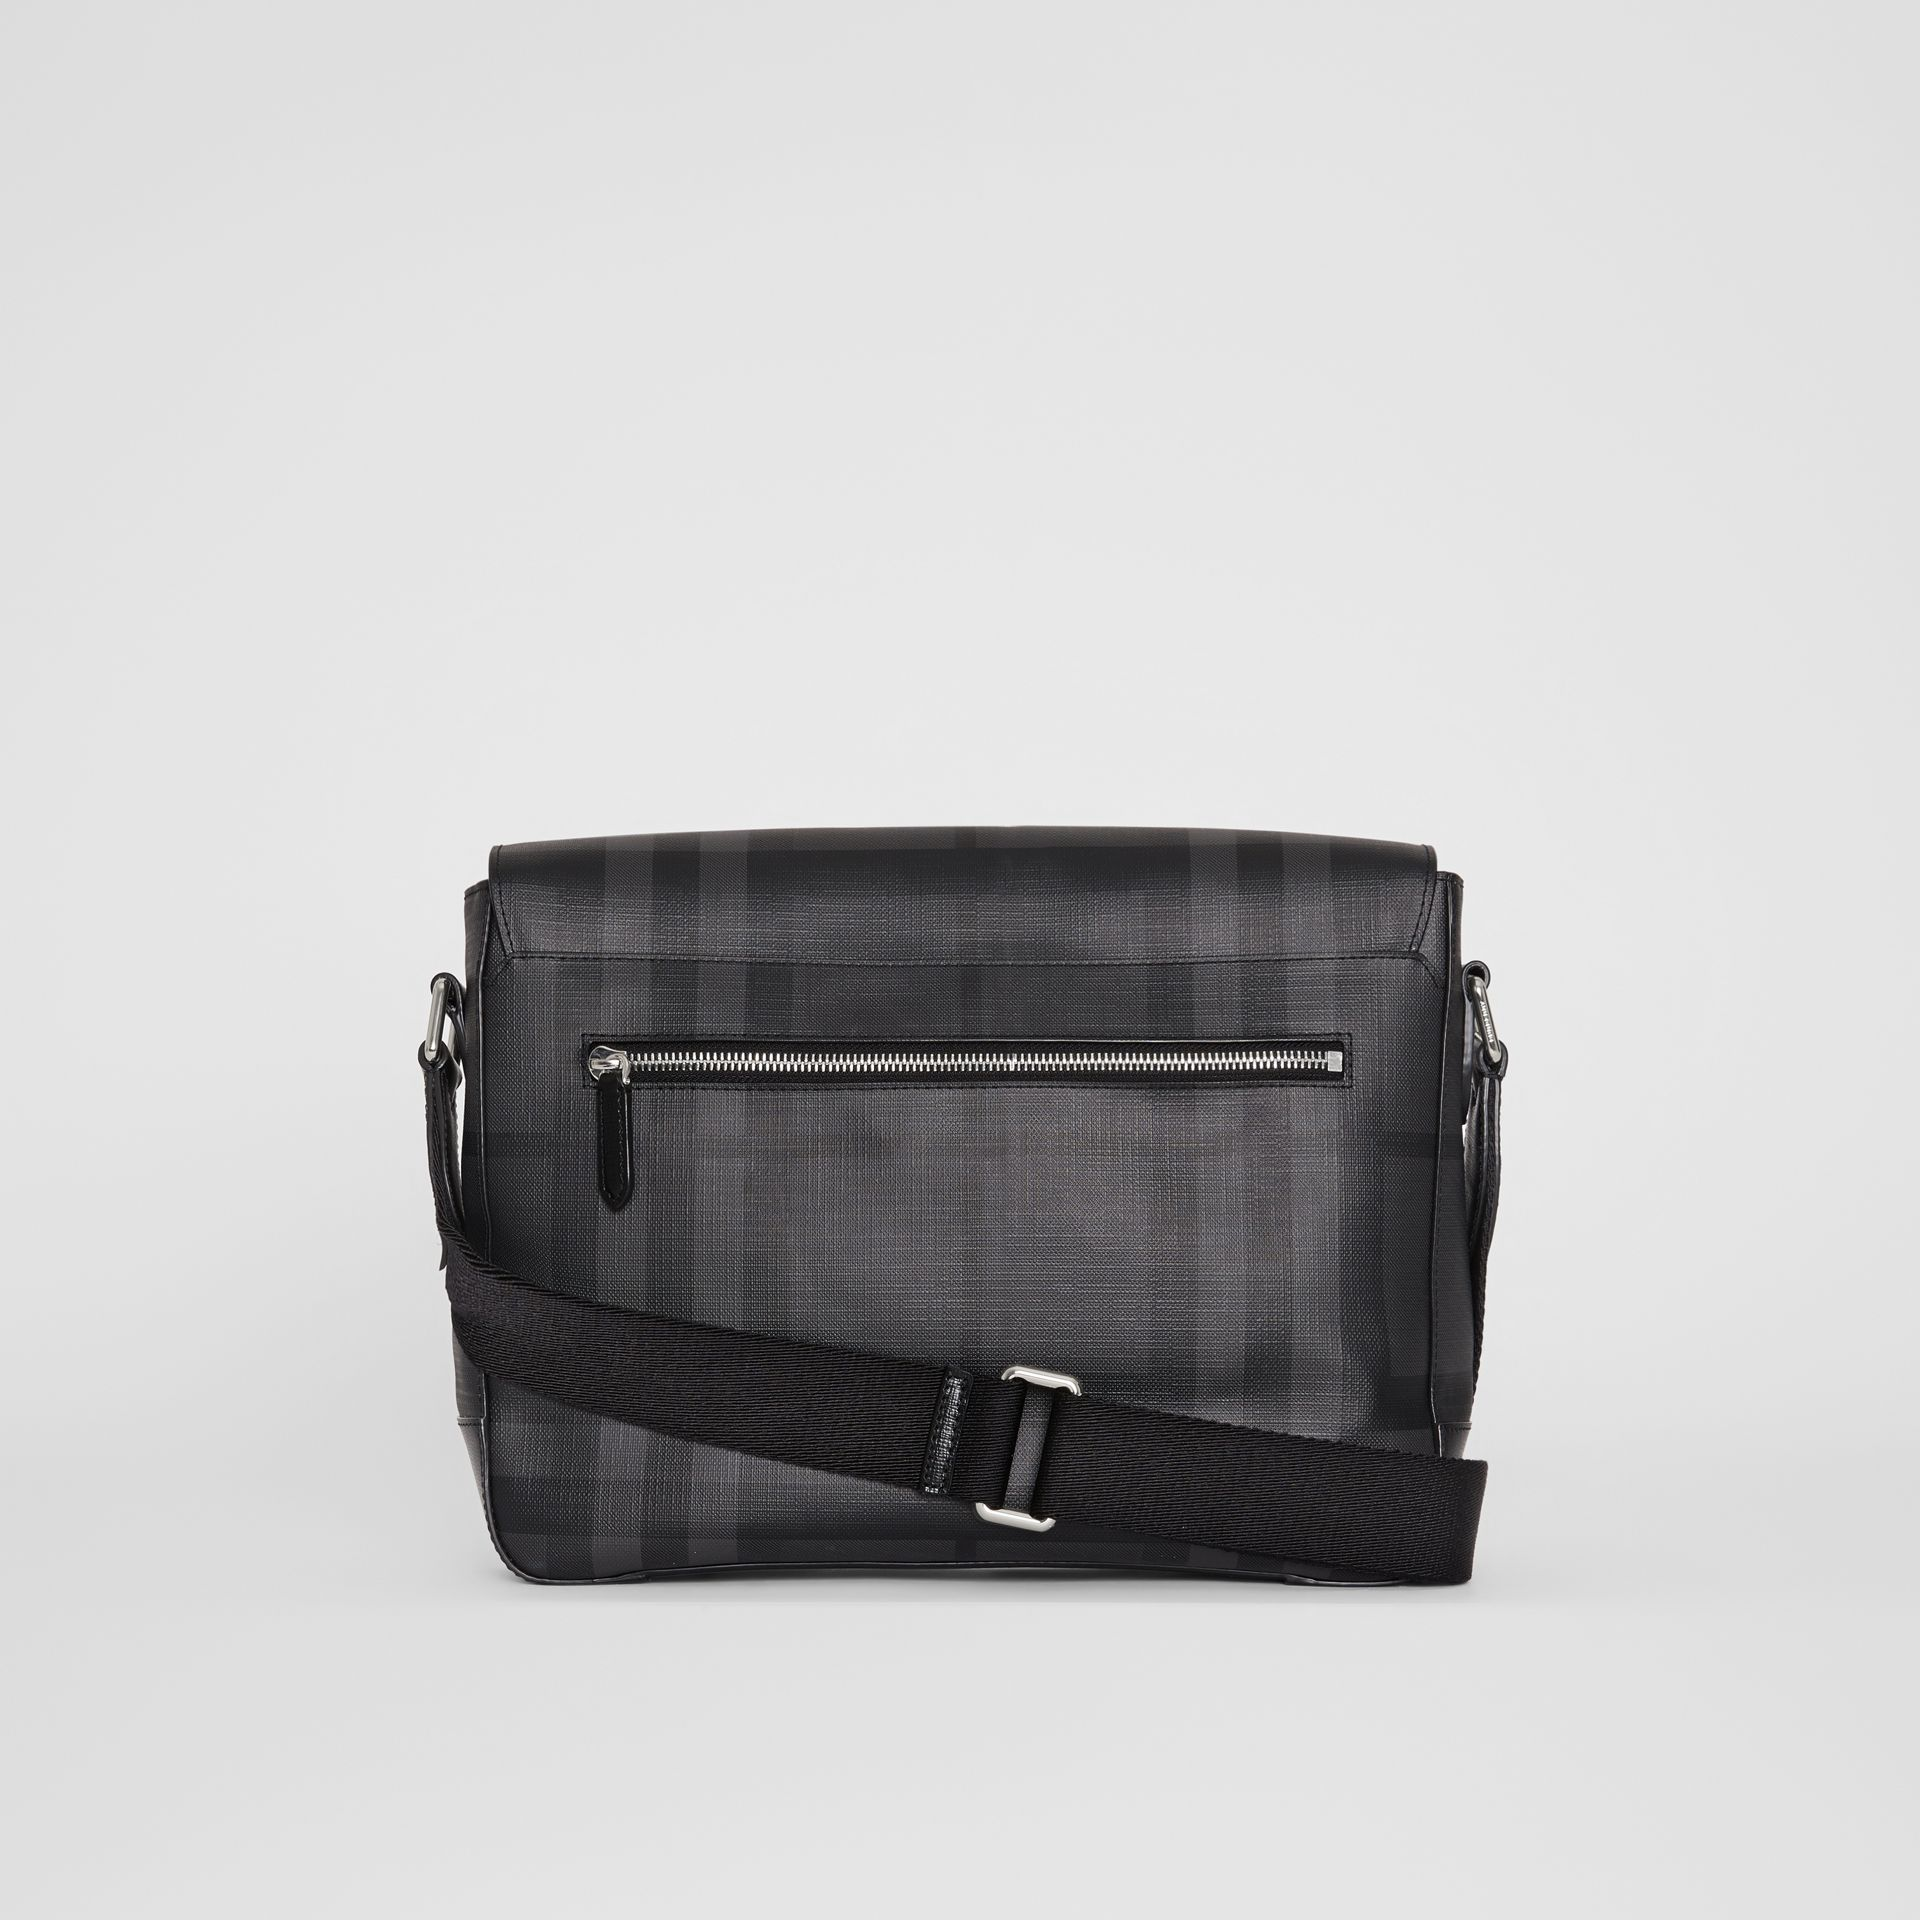 Medium Leather Trim London Check Messenger Bag in Charcoal/black - Men | Burberry - gallery image 7